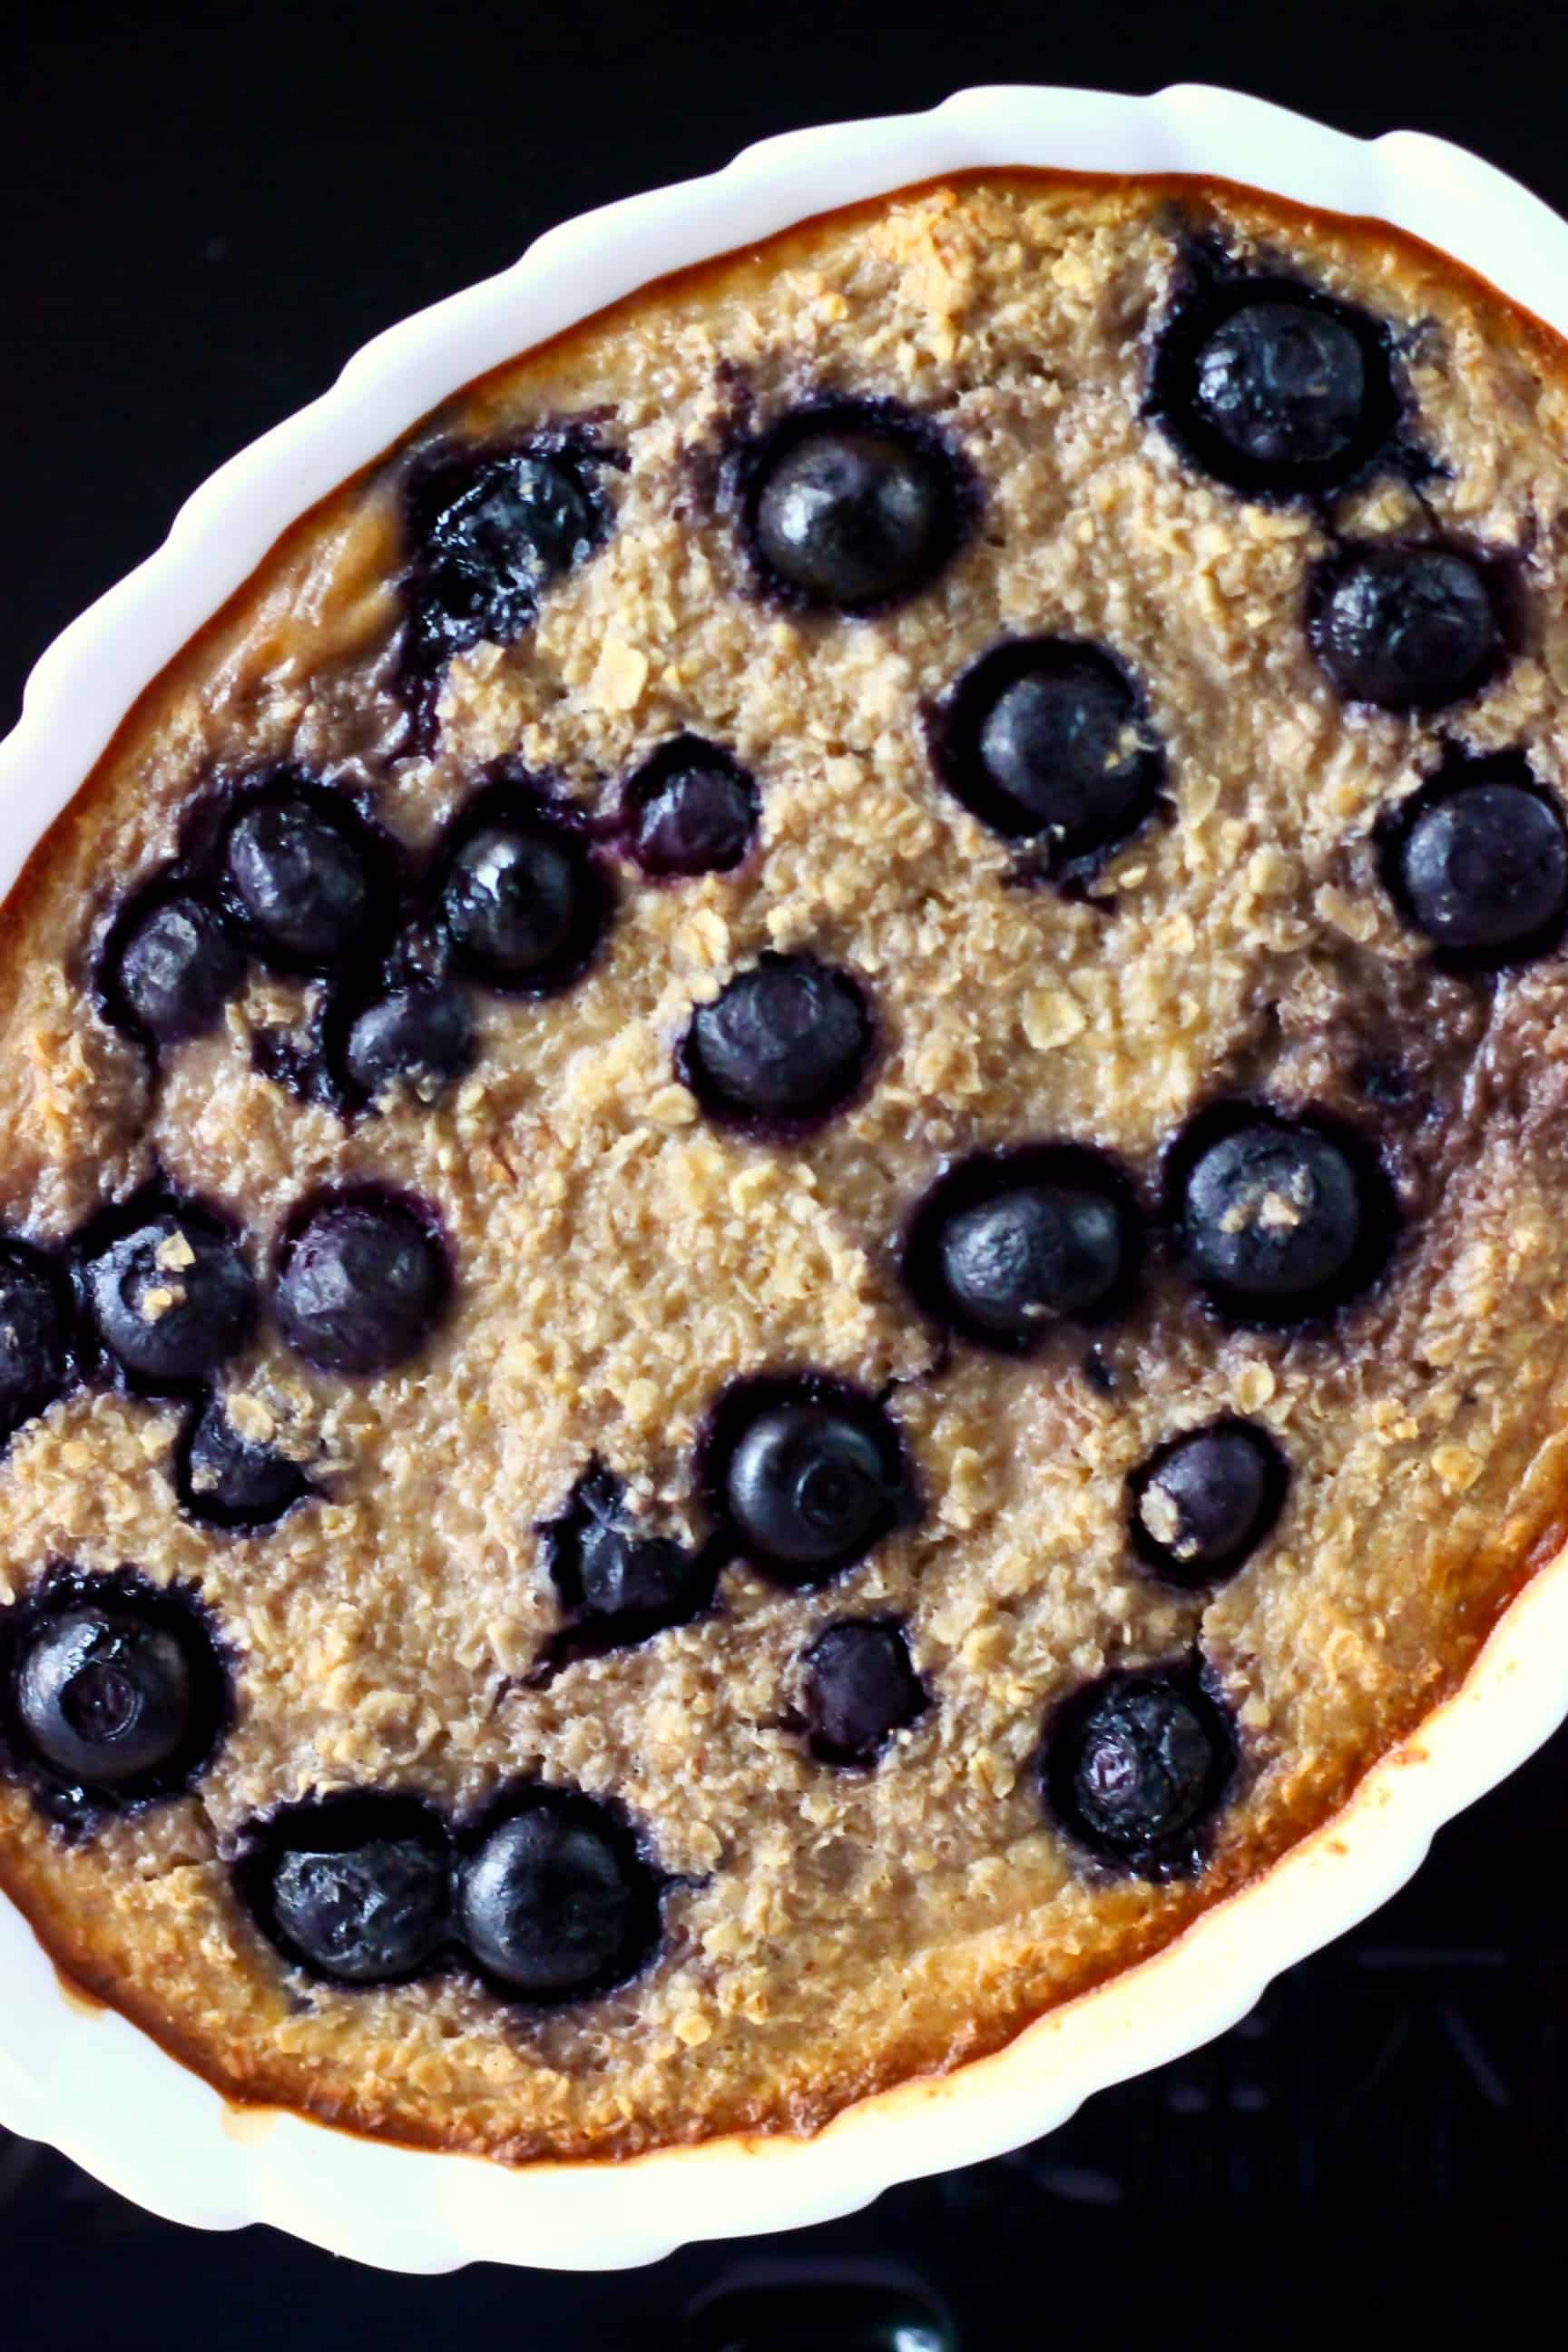 Baked oatmeal with blueberries in a white oval dish against a black background